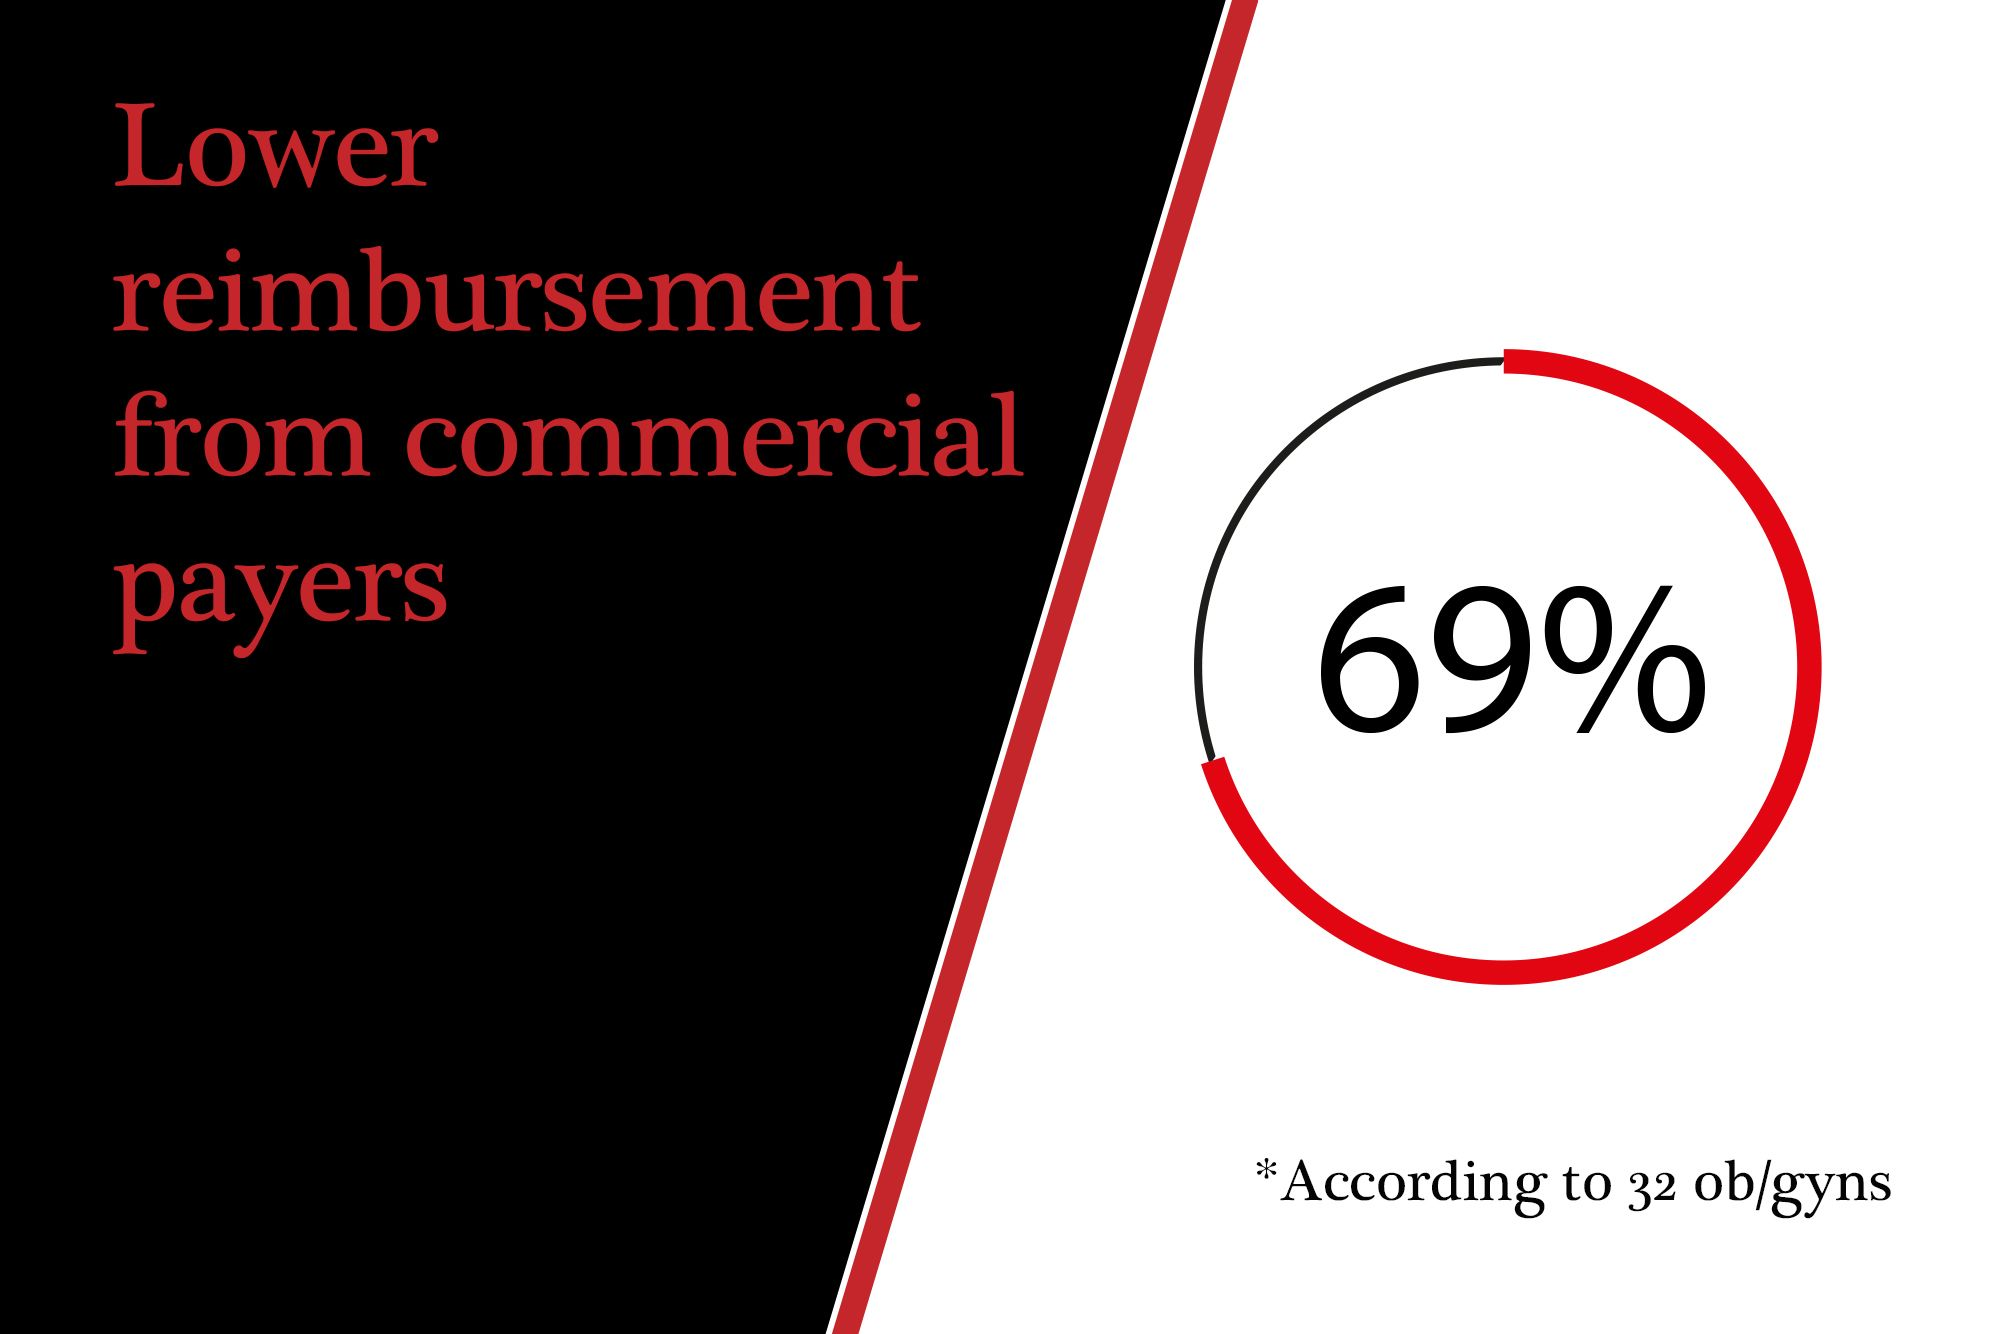 Lower reimbursement from commercial payers